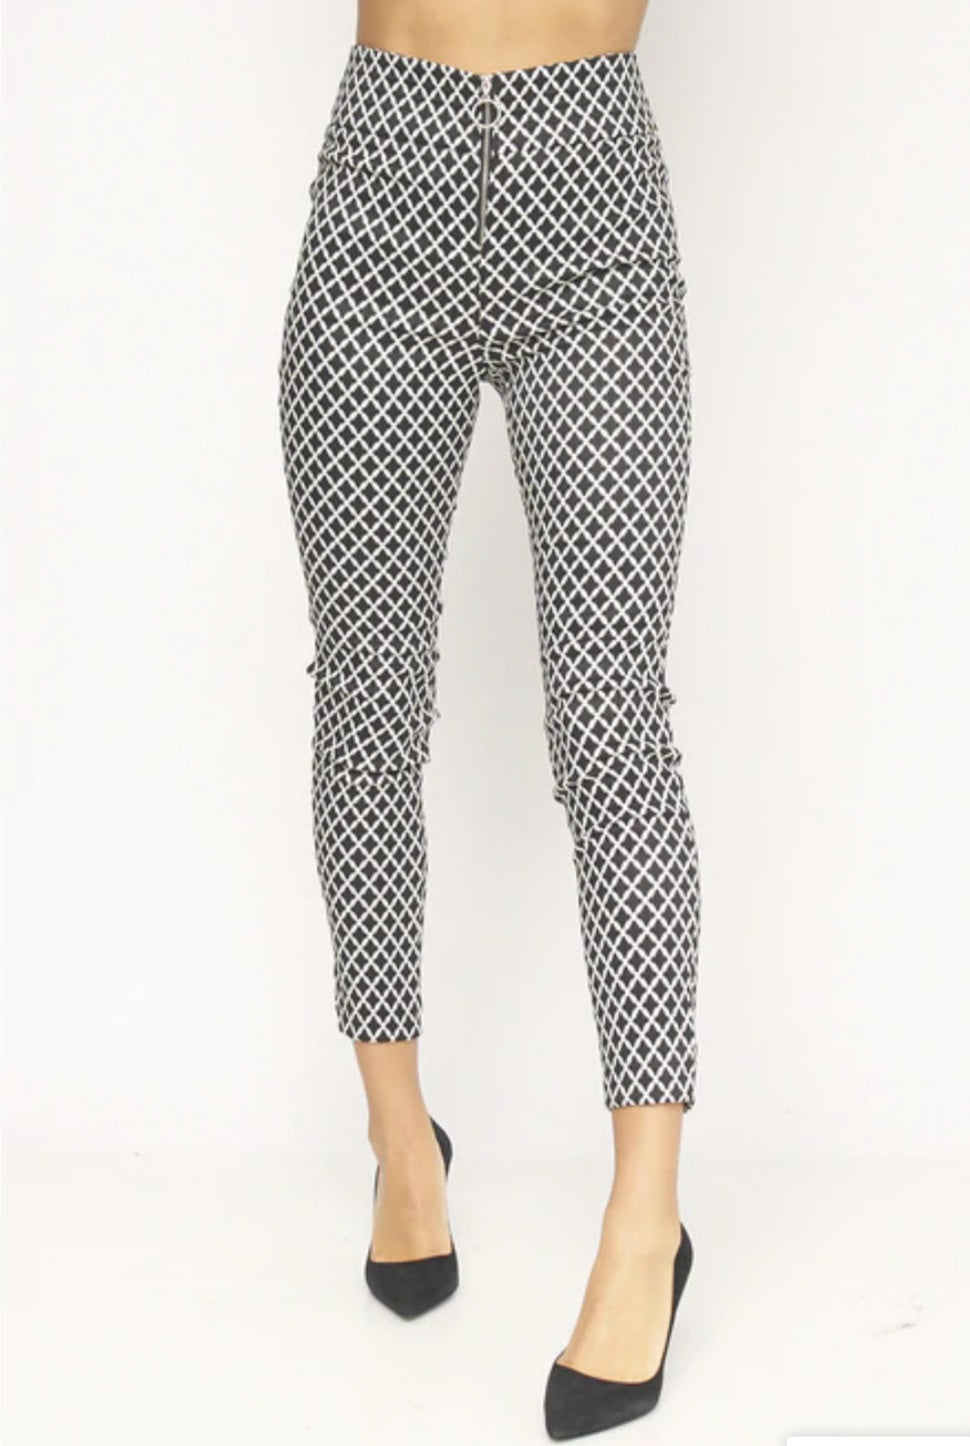 Women's Black/White Diamond Print Skinny Leg Pants - Lookeble